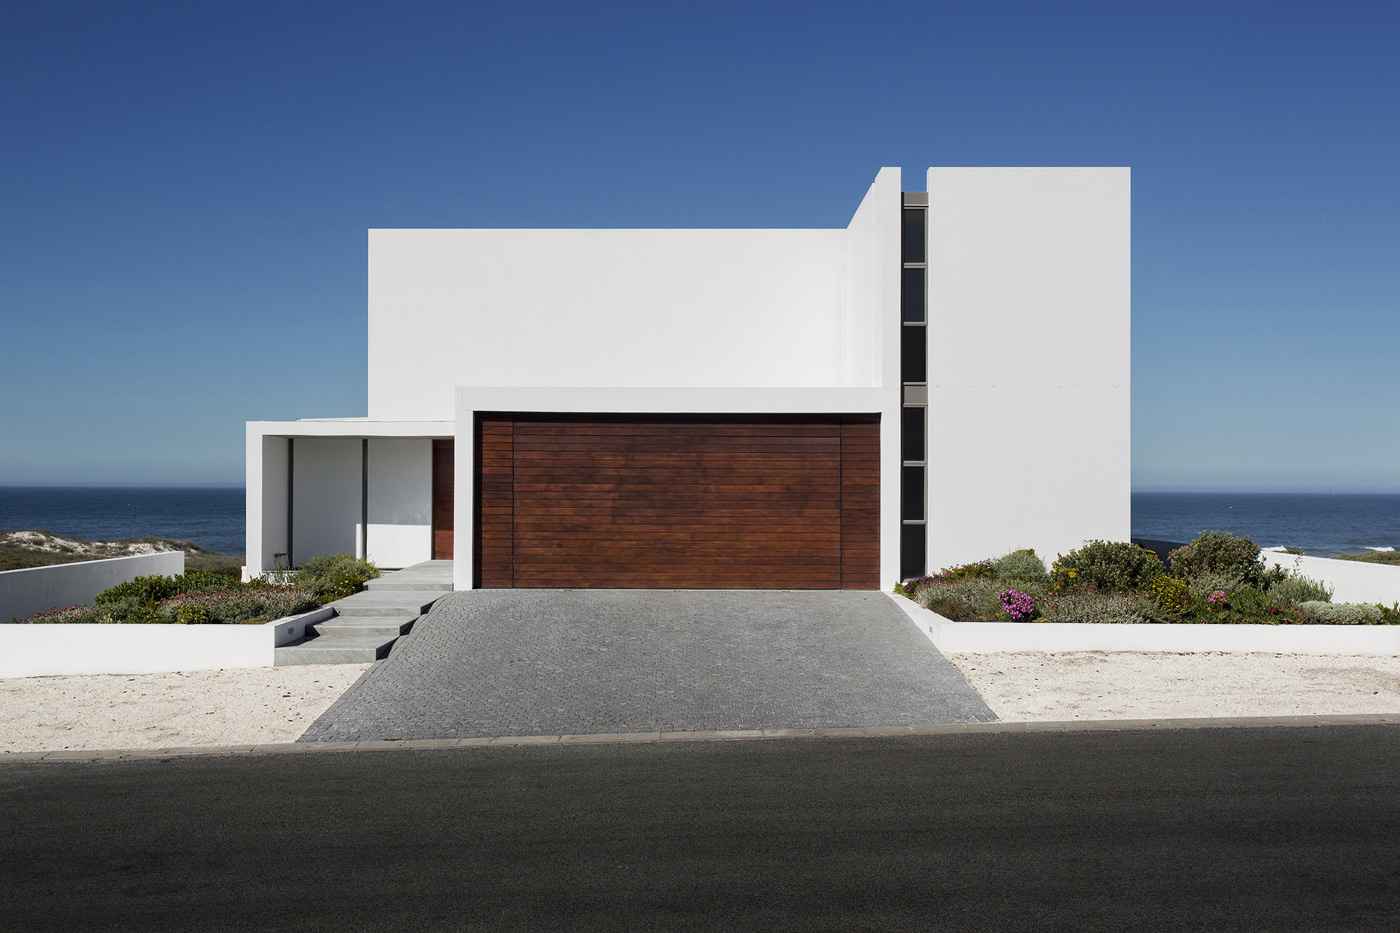 Garage, Driveway, Entrance, Holiday Home in Yzerfontein, South Africa